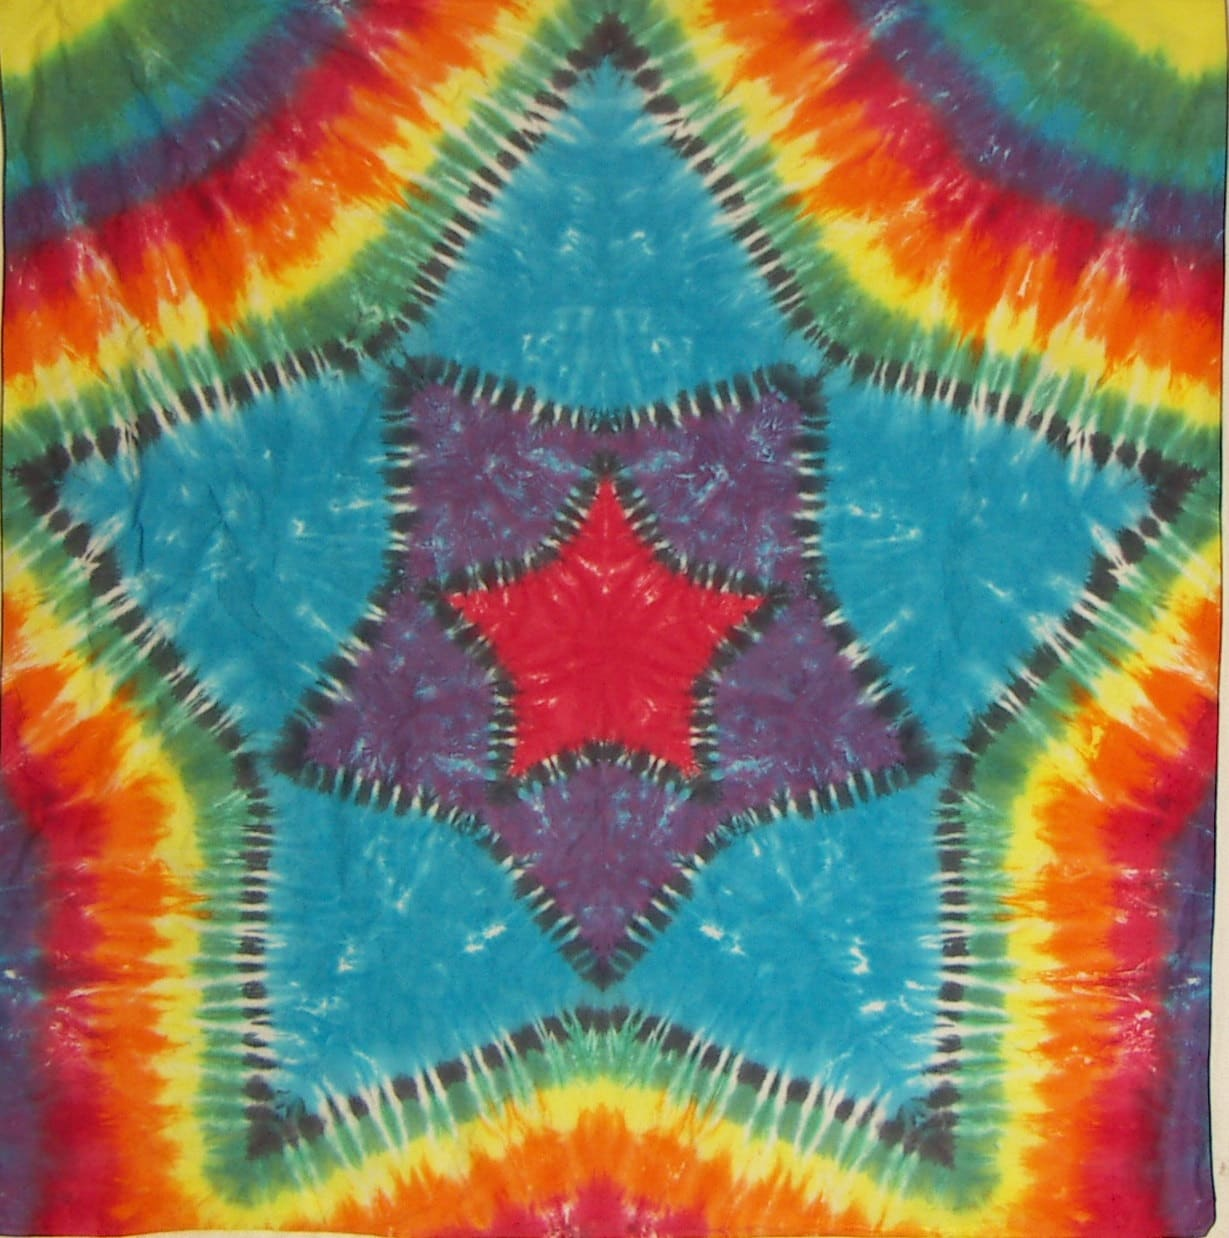 Tie Dye Tapestry Tie Dye Fabric Rainbow Star Within A Star